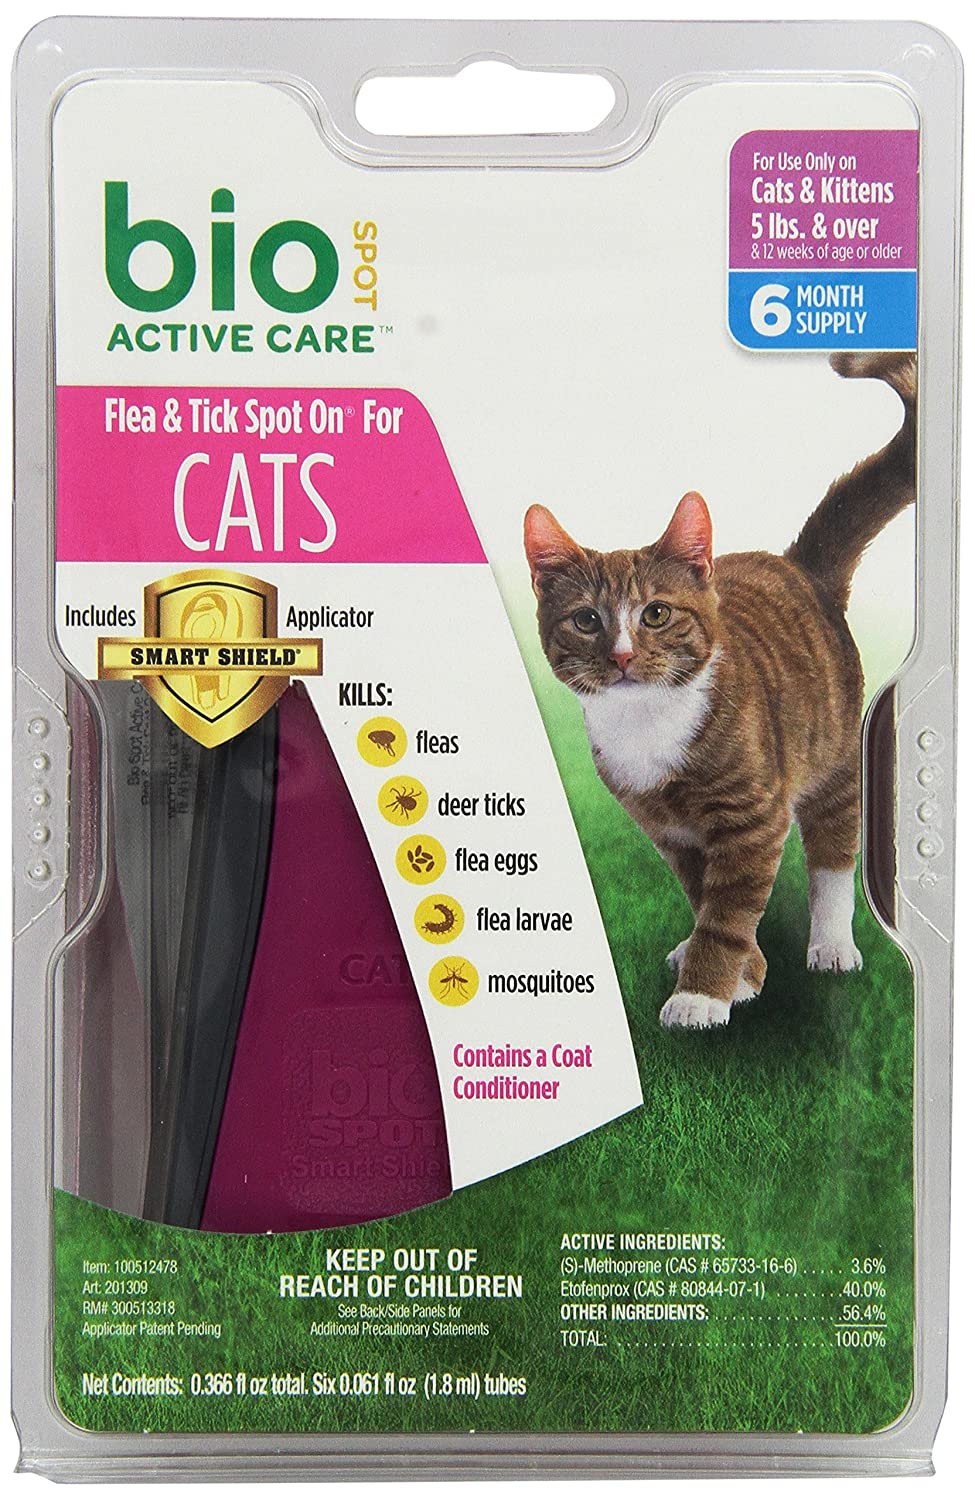 BioSpot Active Care Spot On with Applicator for Cats over 5 lbs 6 Month Supply